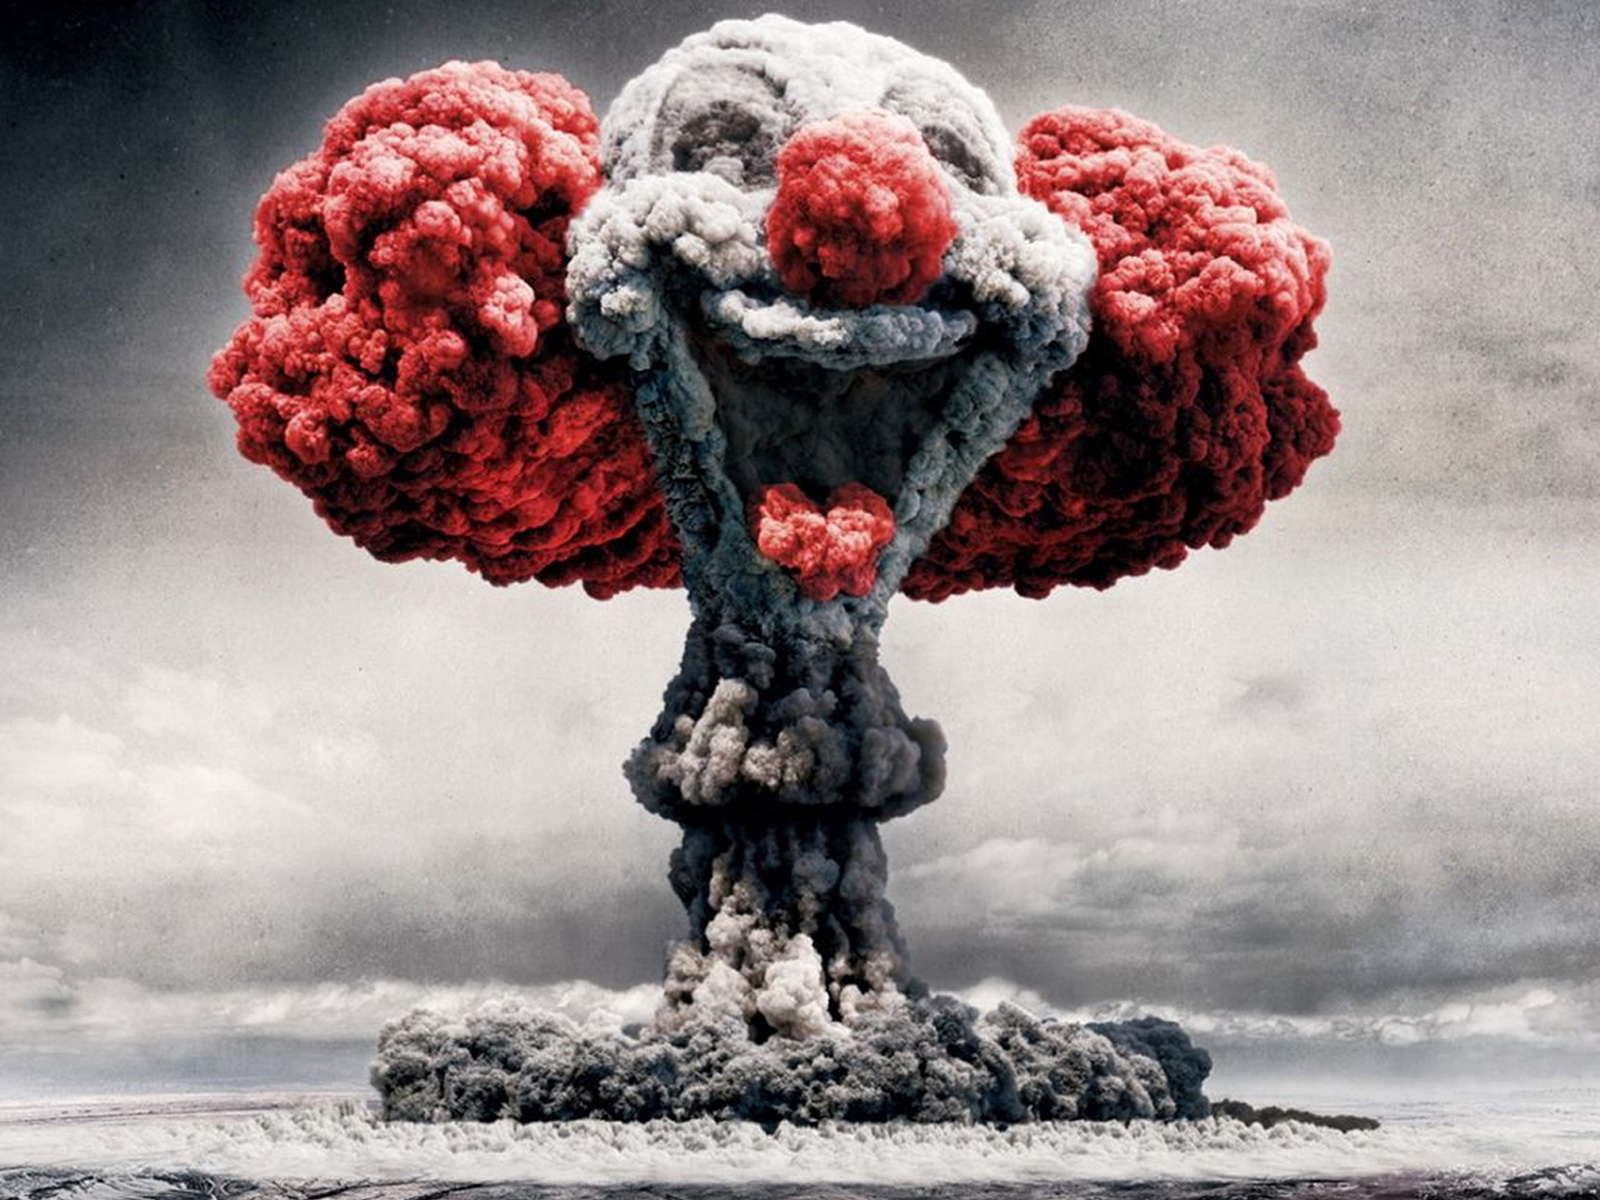 Atomic Bomb Clown